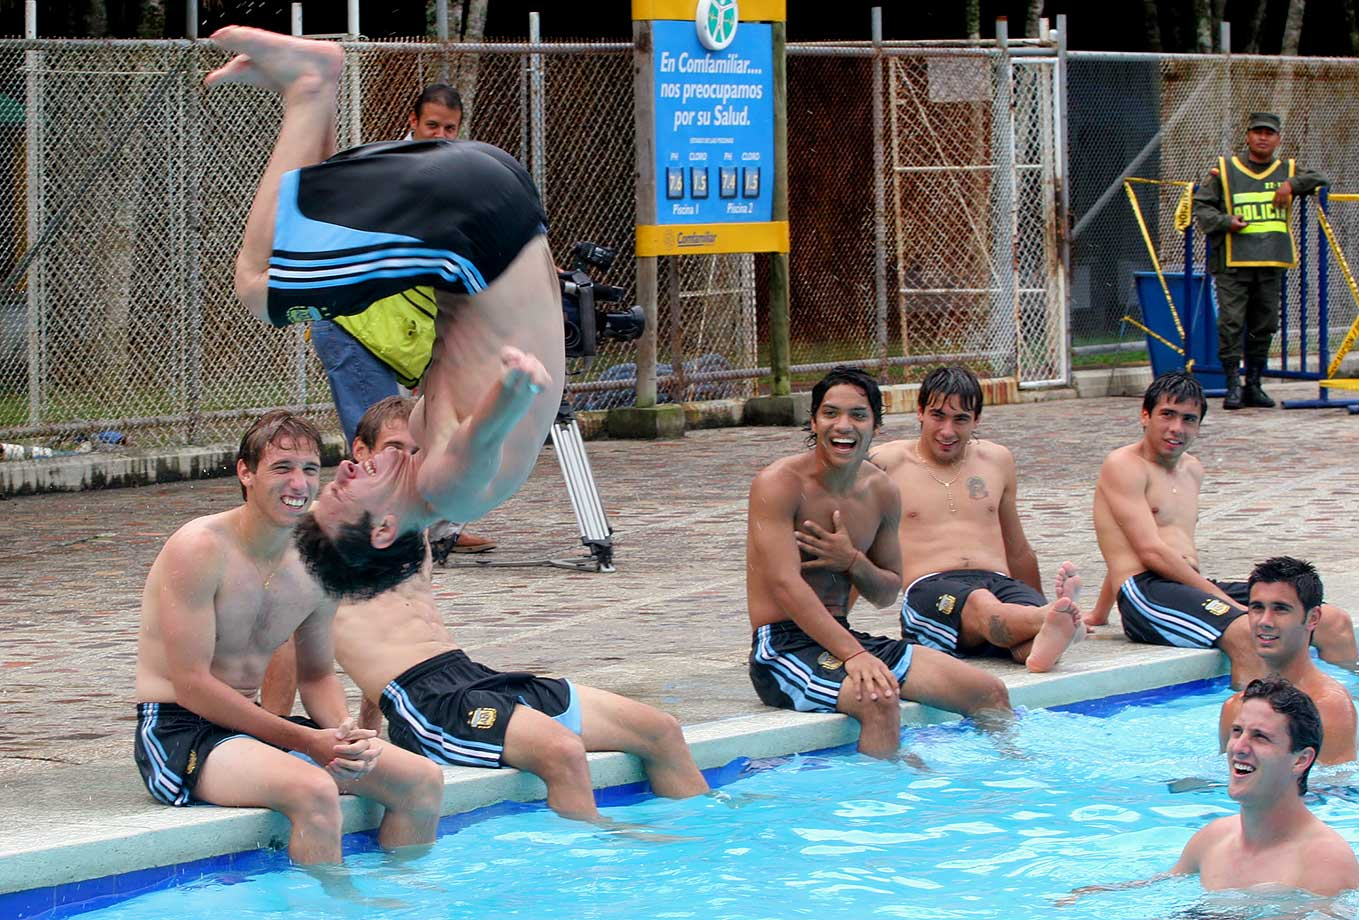 Lionel Messi flips into a pool during a relaxed practice of Argentina's Under-20 soccer team on Jan. 14, 2005 in Pereira, Colombia.